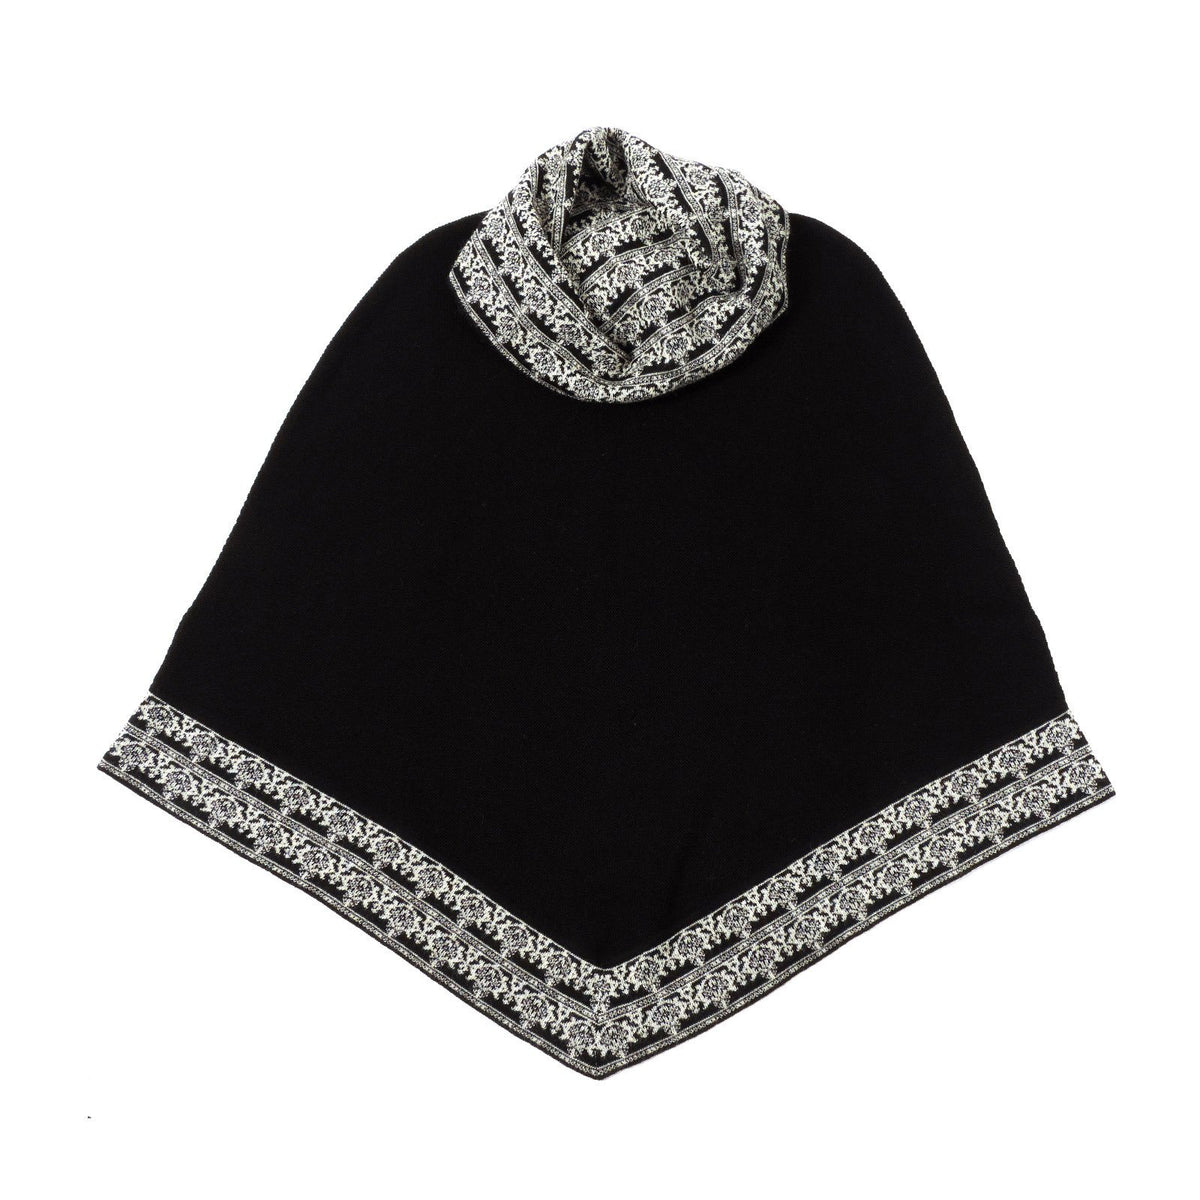 100% Baby Alpaca Poncho with Cowl Neck - Black - Qinti - The Peruvian Shop